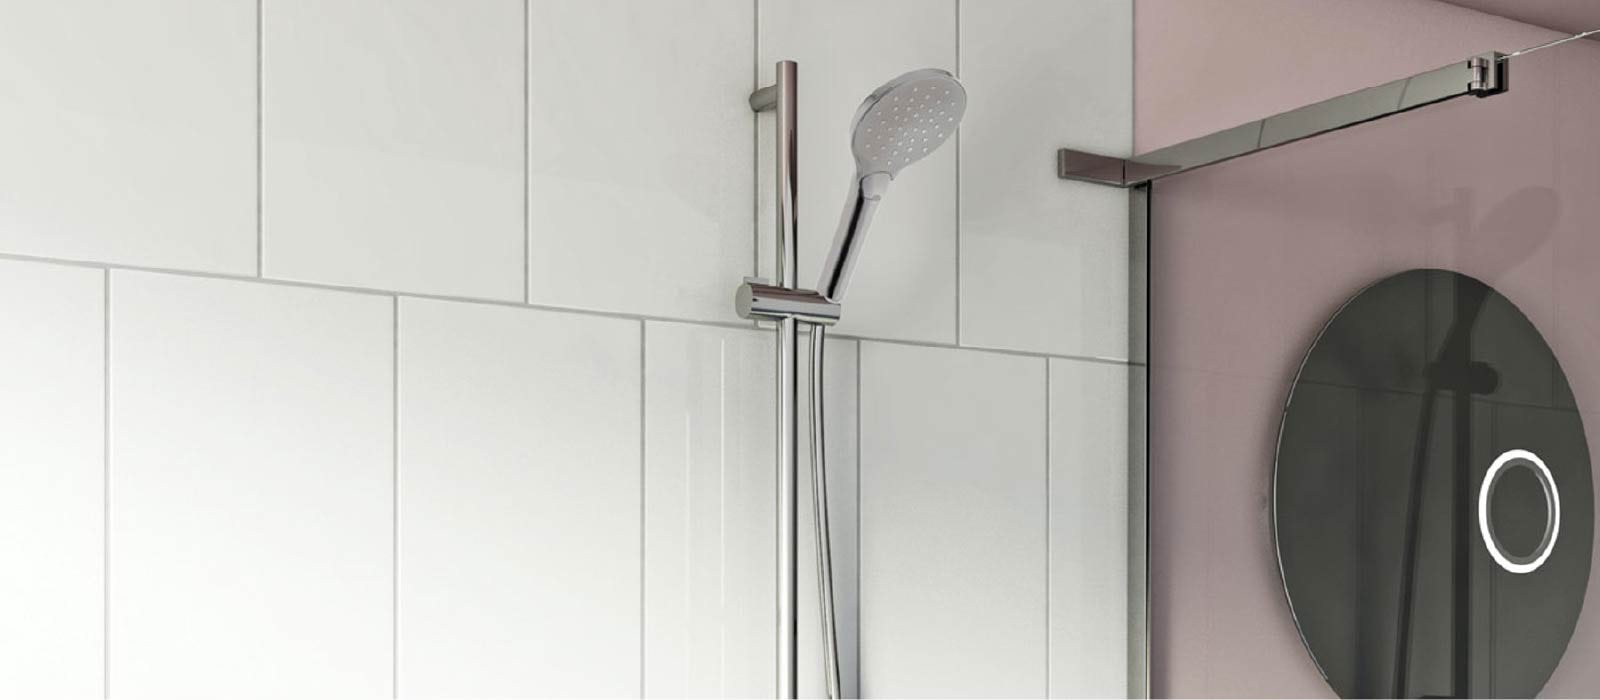 Replacing a shower head holder—what are your options?